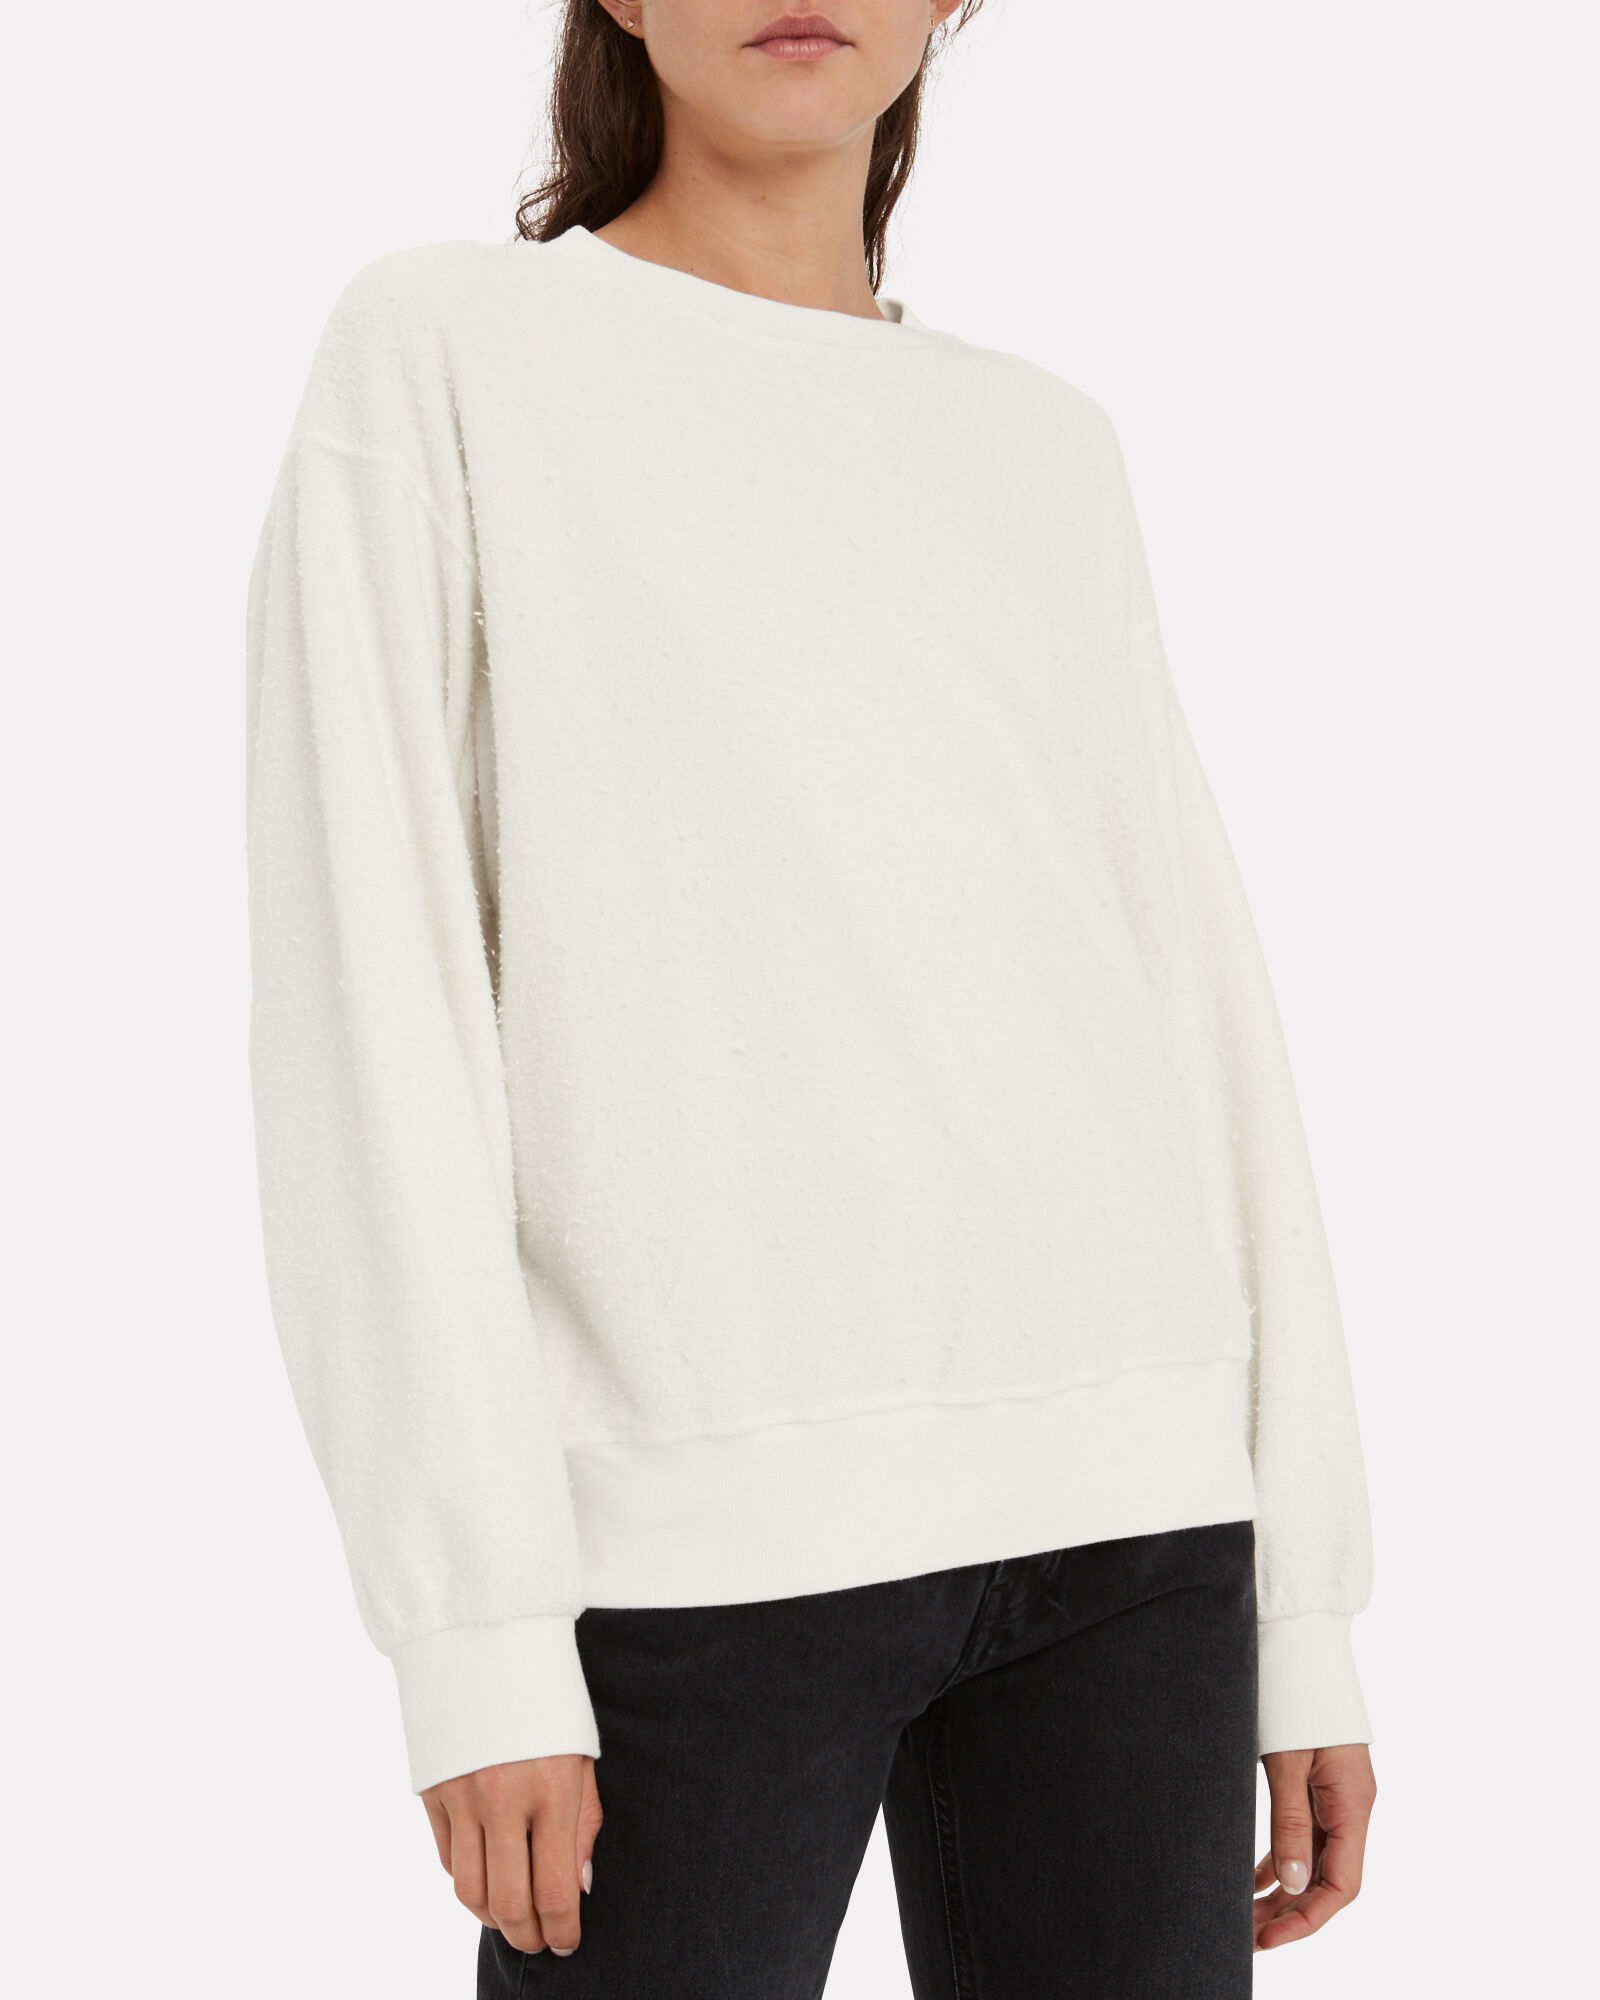 Lou Inside Out Terry Sweatshirt, CREAM, hi-res